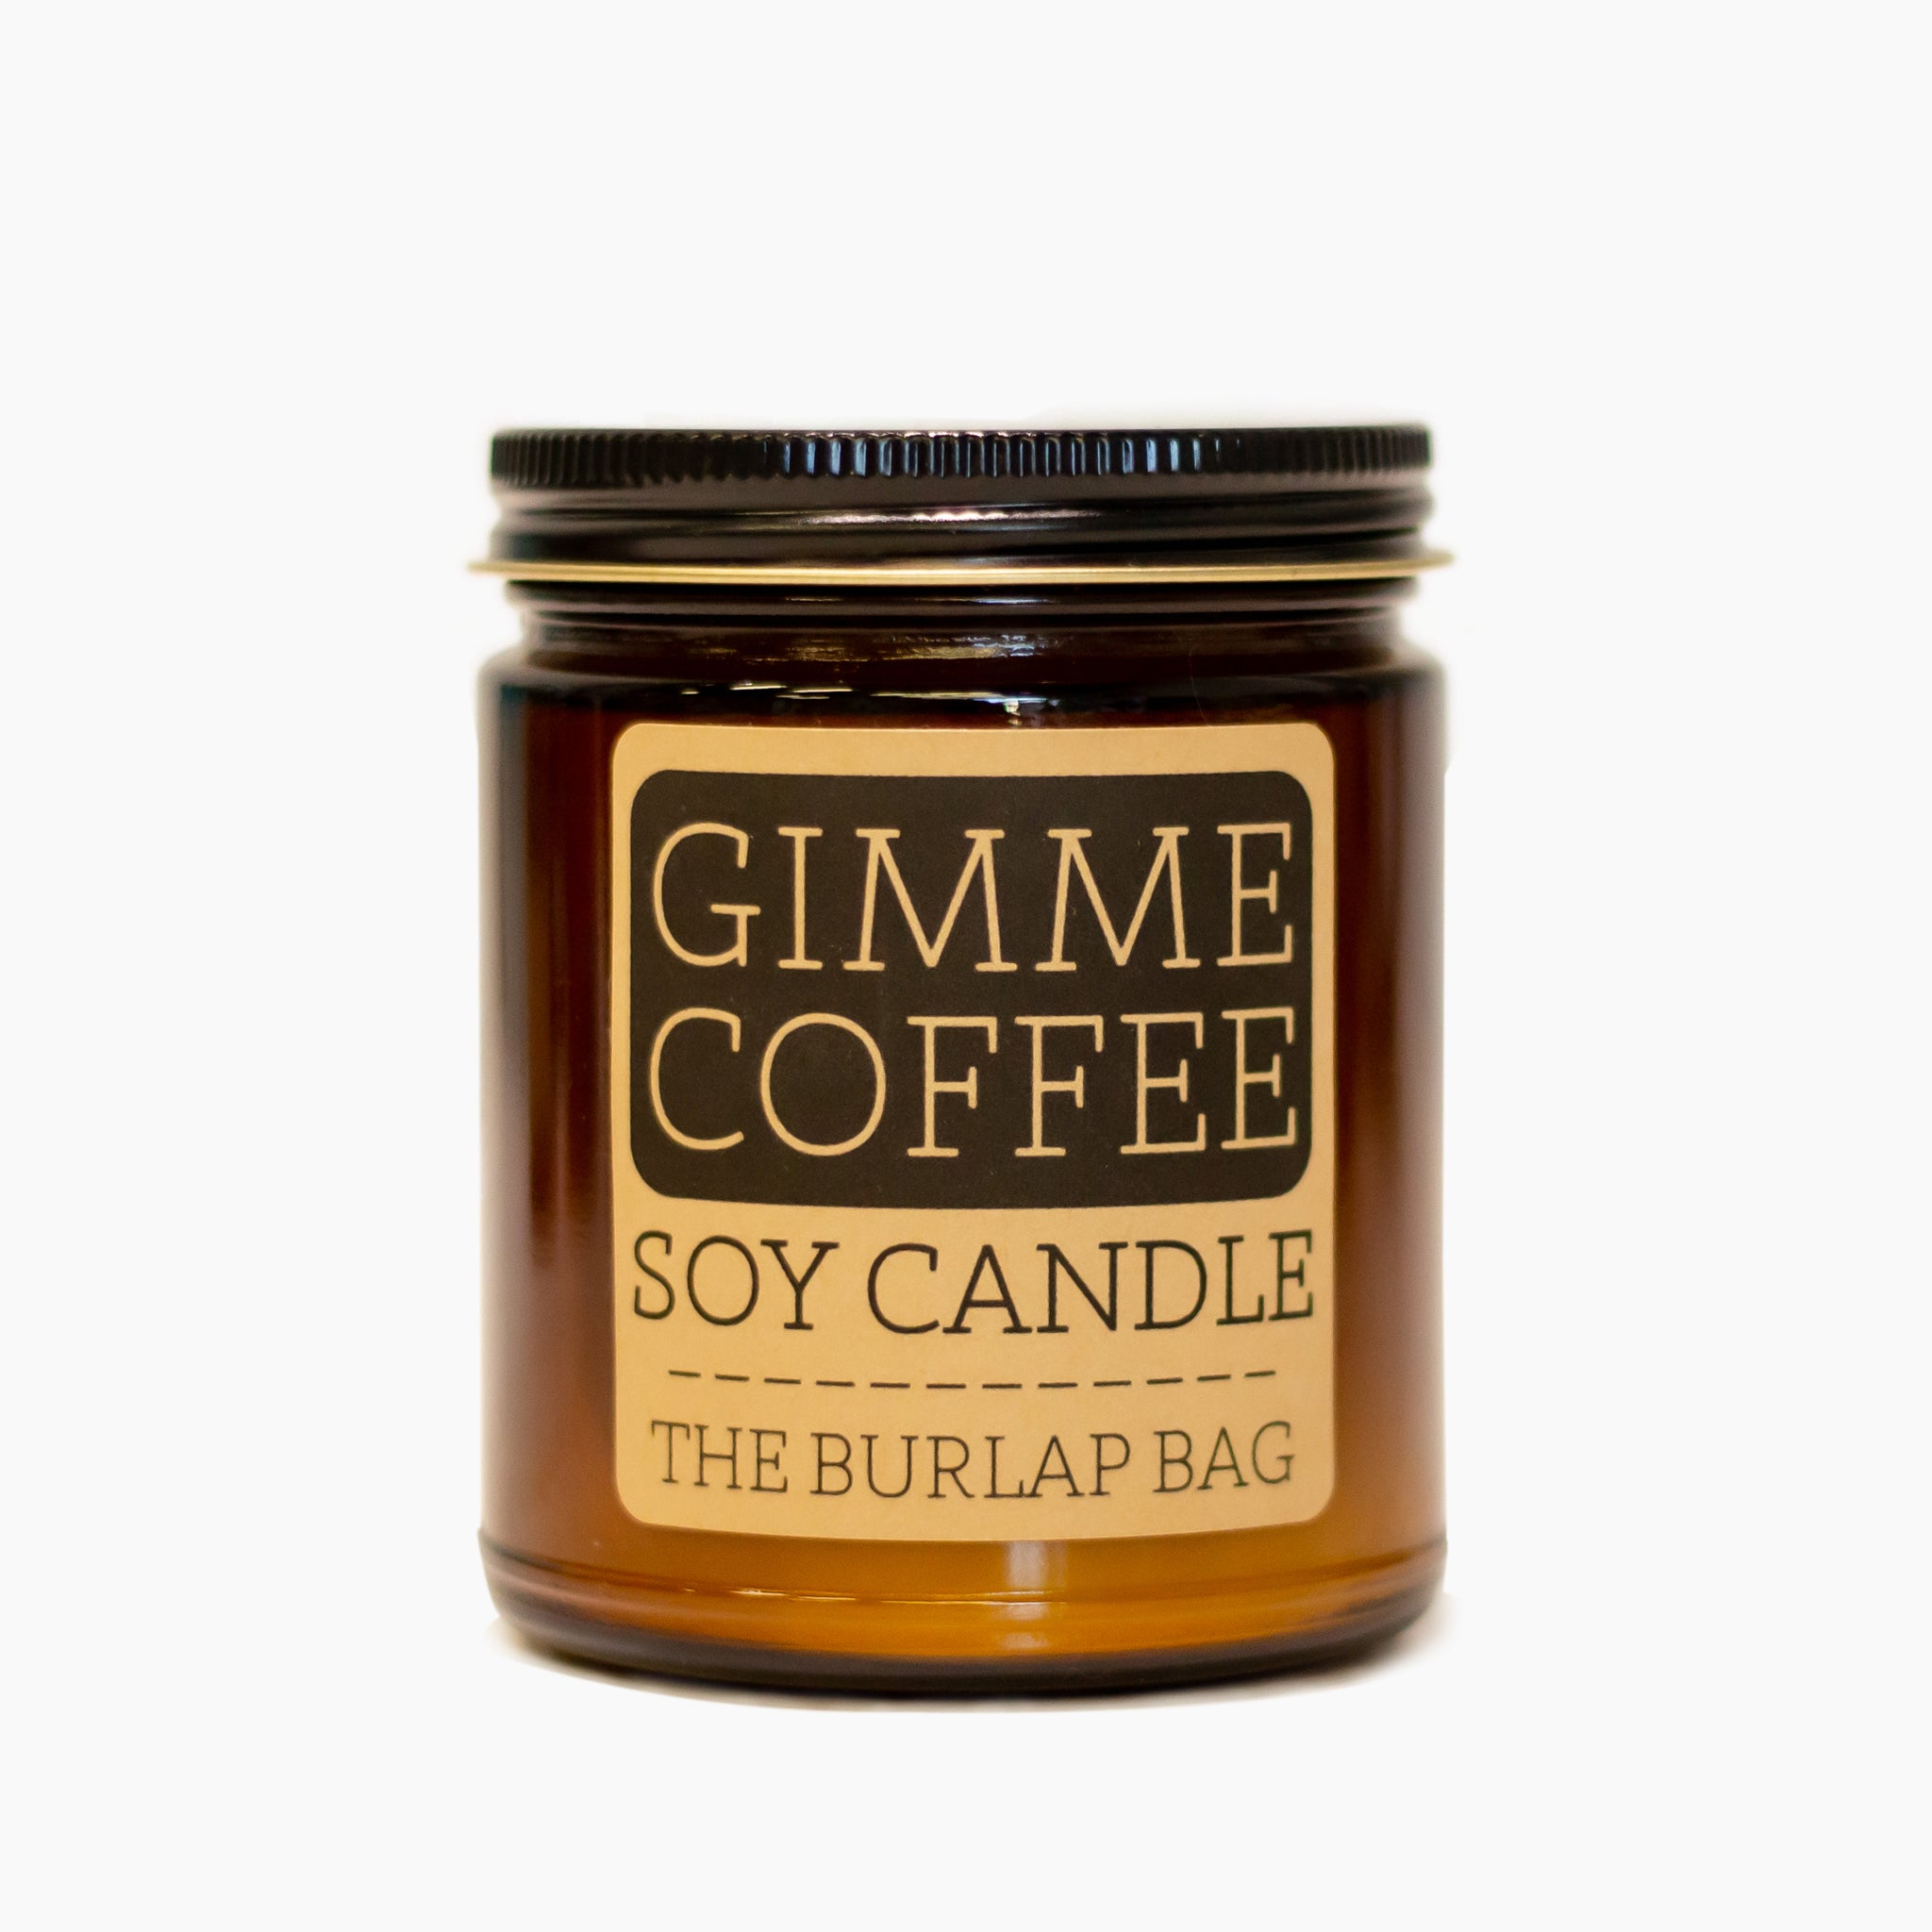 The Burlap Bag Soy Candle